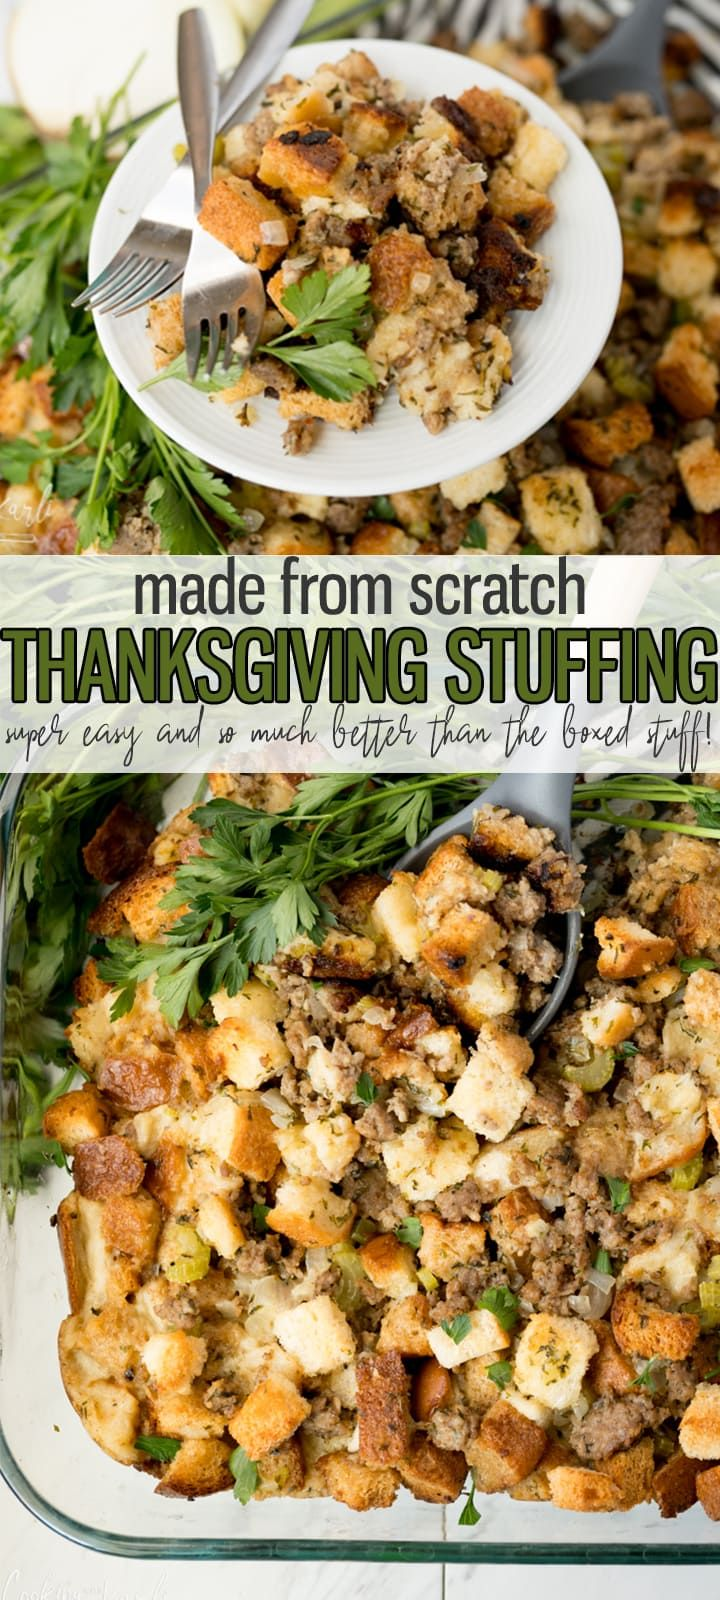 Stuffing Recipe with Sausage - Cooking With Karli